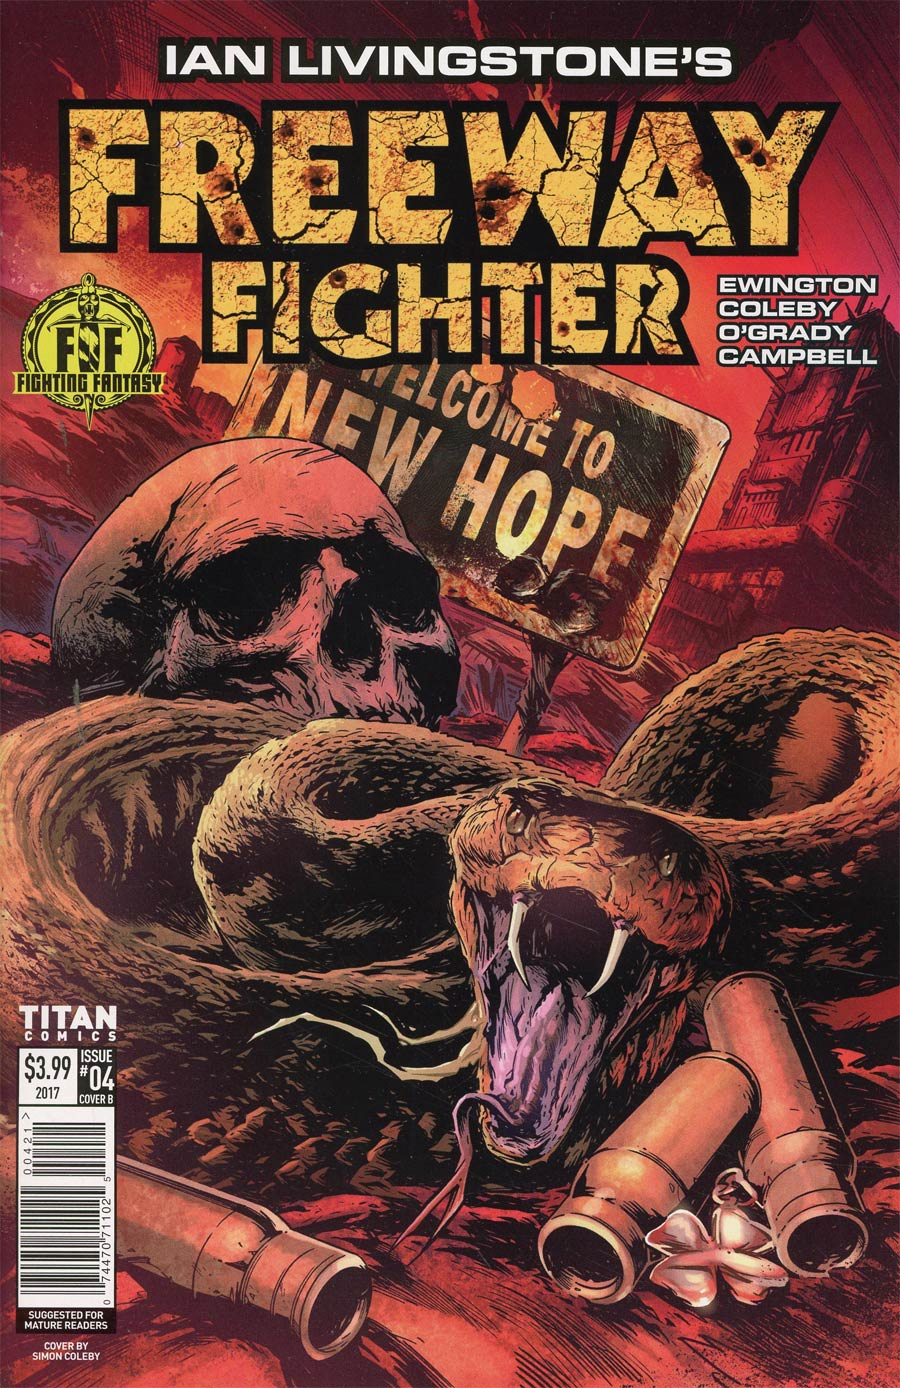 Ian Livingstones Freeway Fighter #4 Cover B Variant Simon Coleby Cover